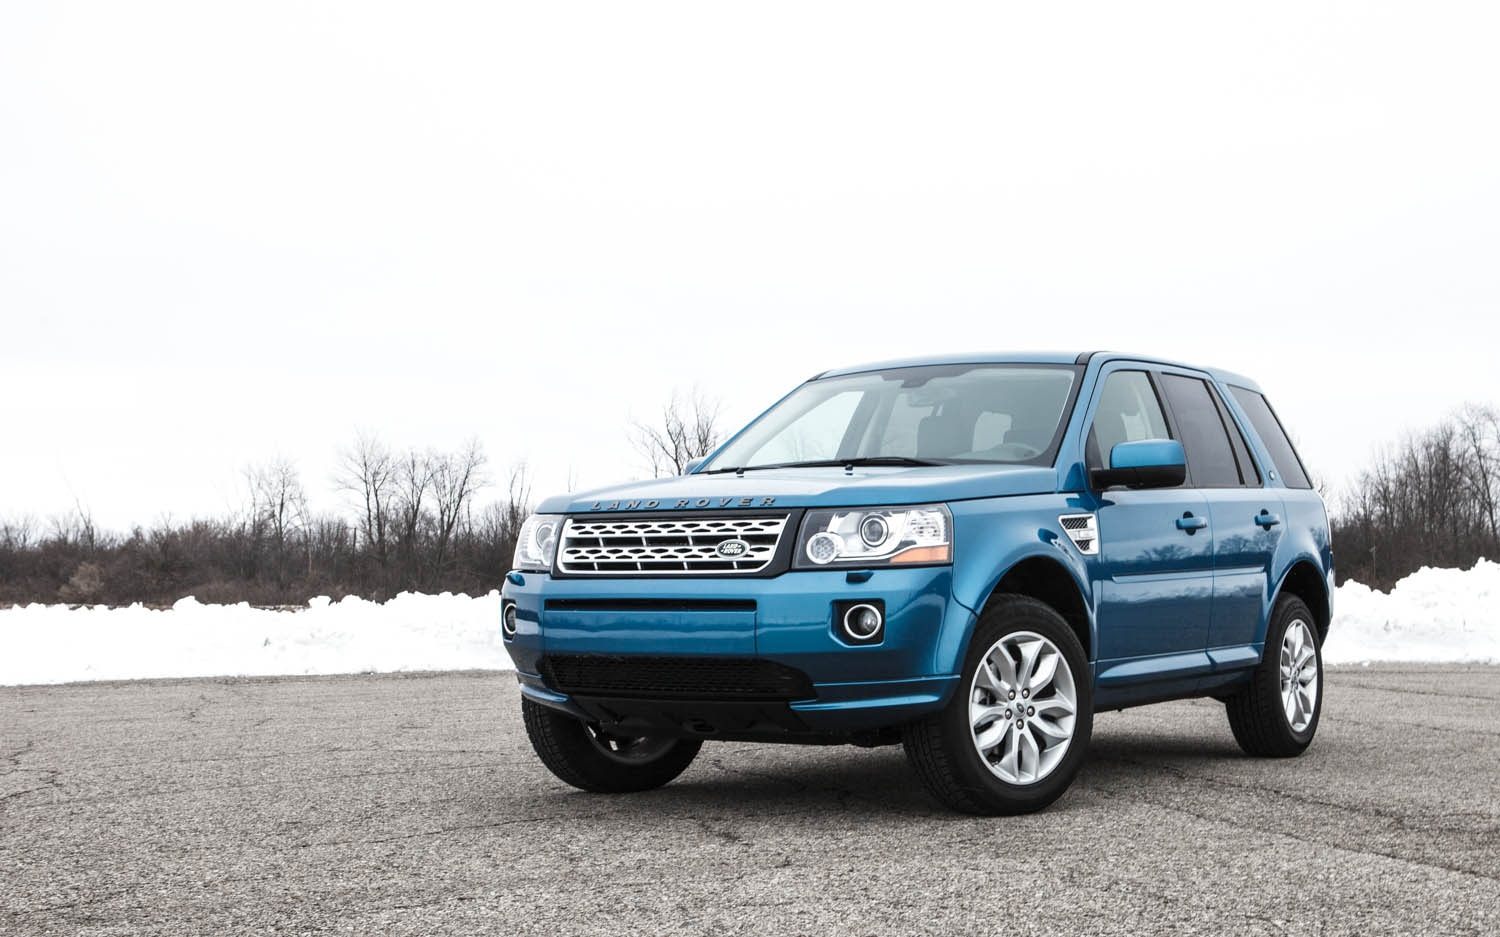 2013 Land Rover LR2 Front Left View 31